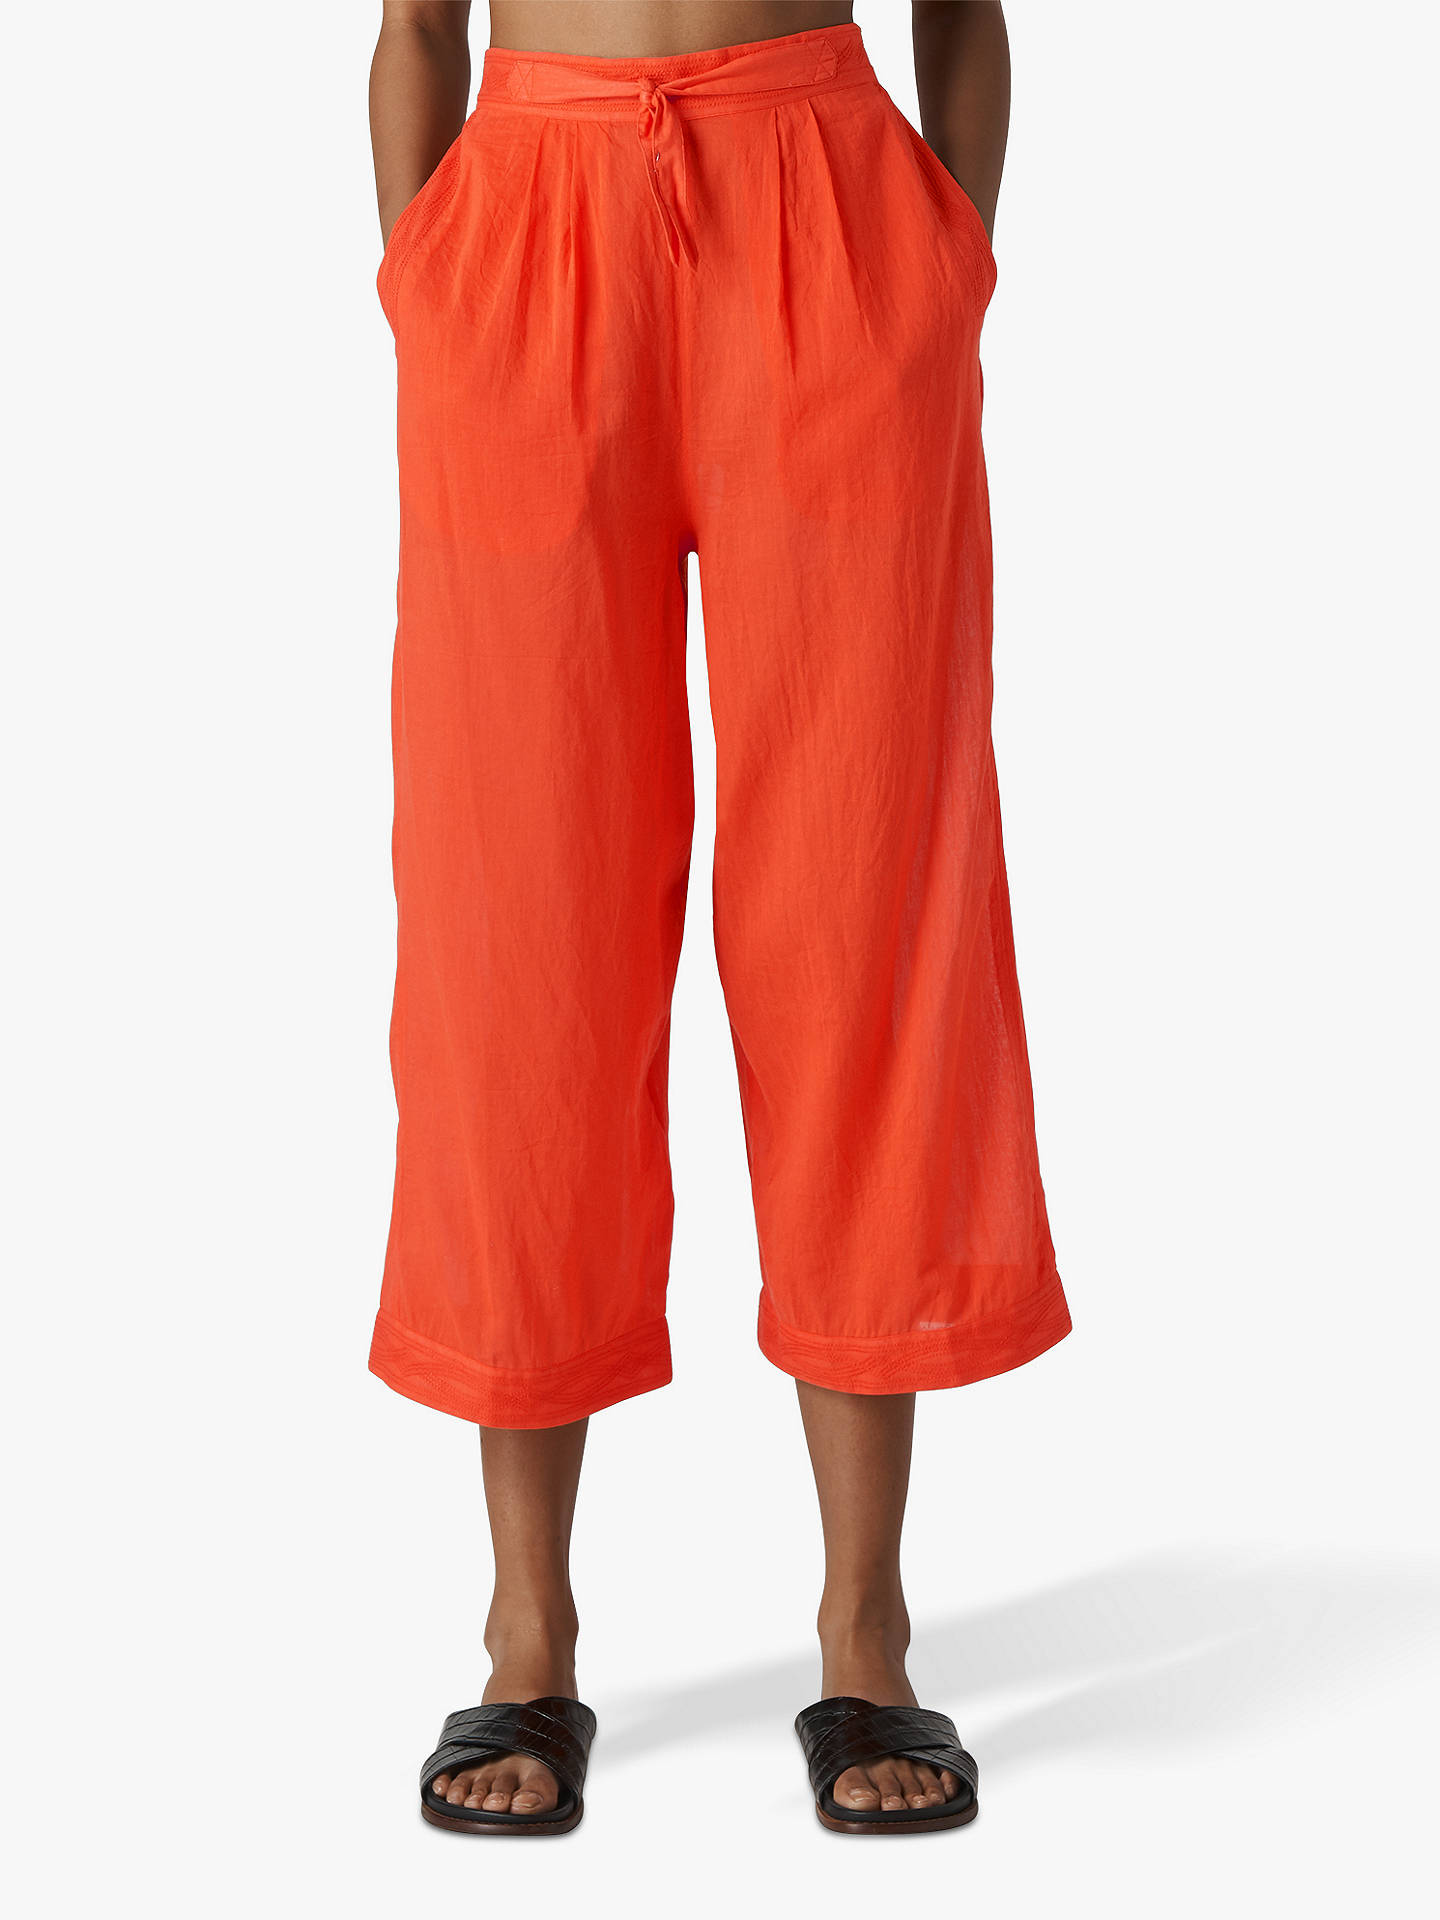 733d64ef54 Buy Whistles Cotton Beach Voile Trousers, Red, XS Online at johnlewis.com  ...